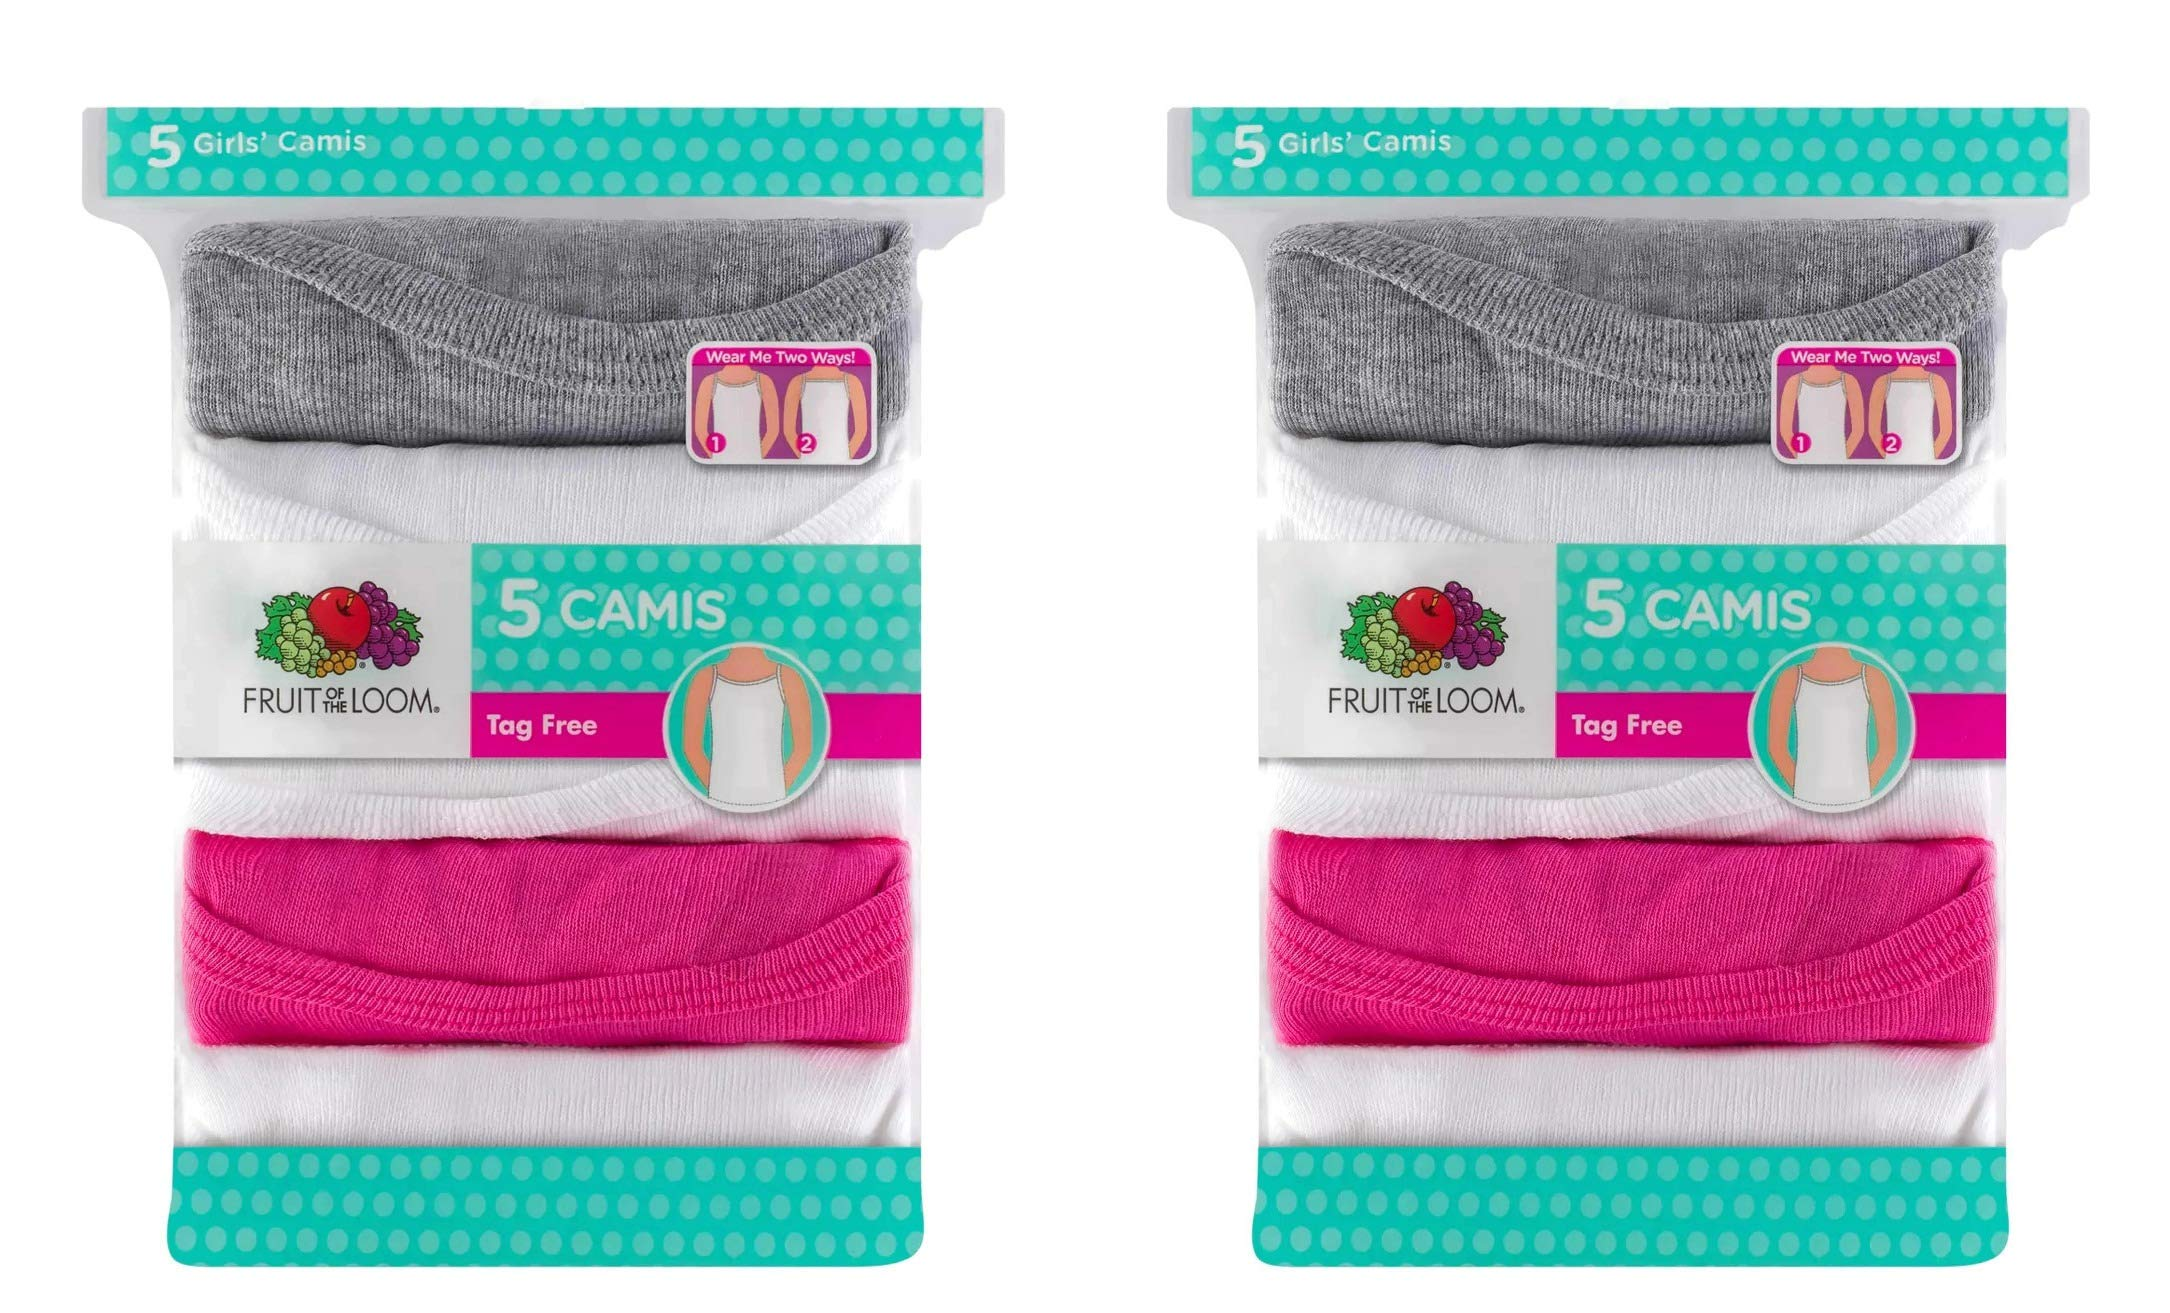 Fruit of the Loom Girls' Camis 10pk Assorted Camisole Tanks Undershirts by Fruit of the Loom